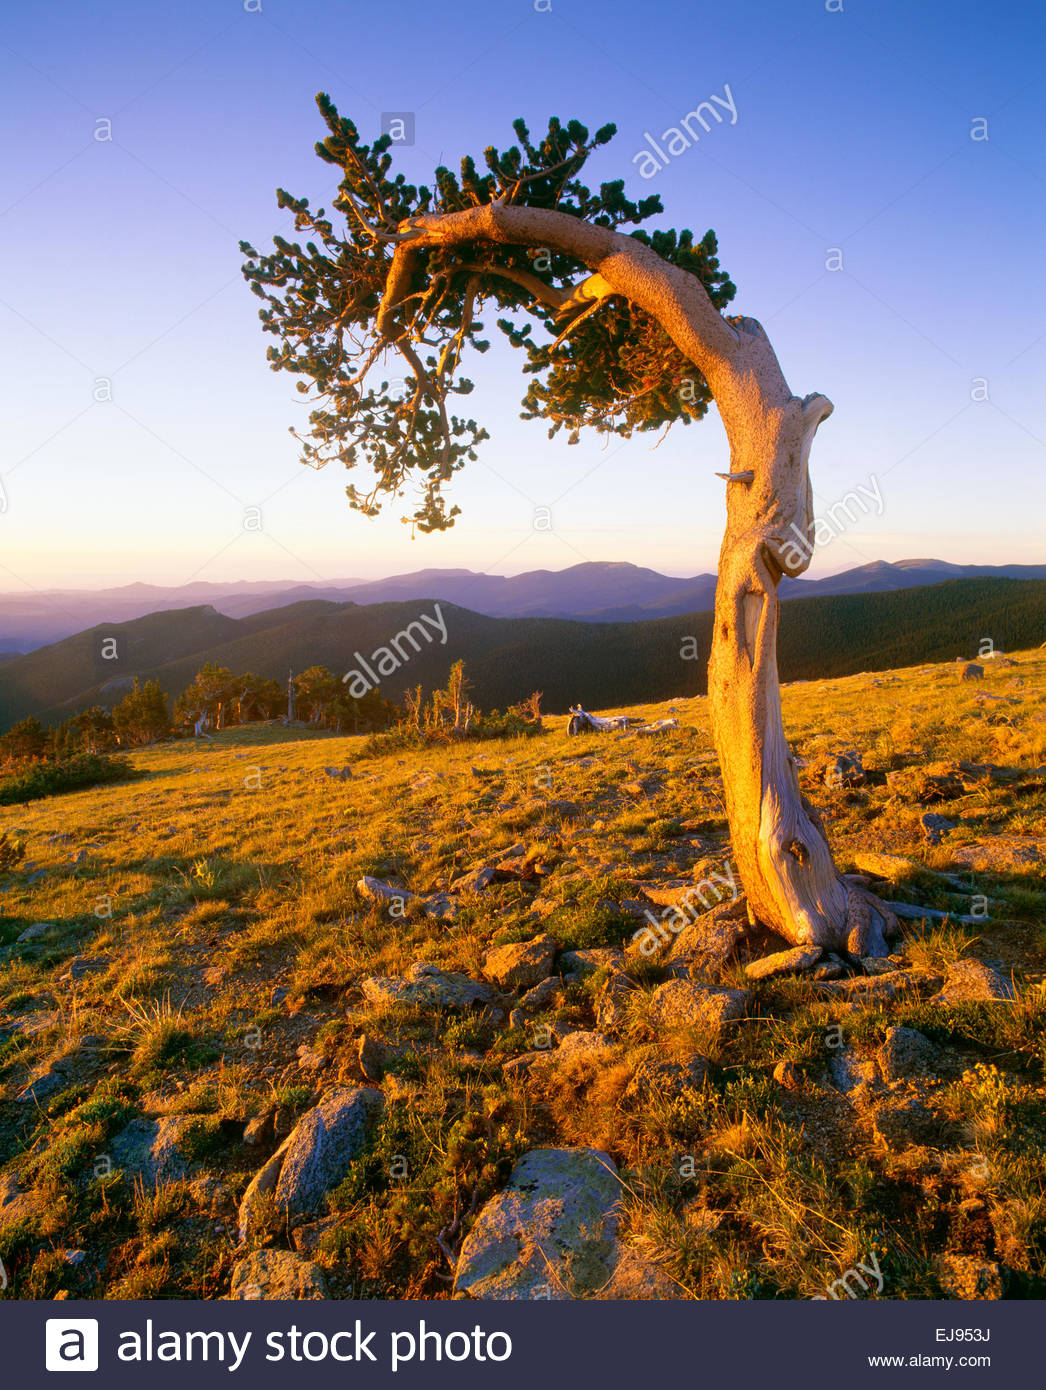 Ancient bristlecone pine on slope of Mt. Evans at Mt. Goliath Natural Area.  Arapaho National Forest, Colorado. - Stock Image